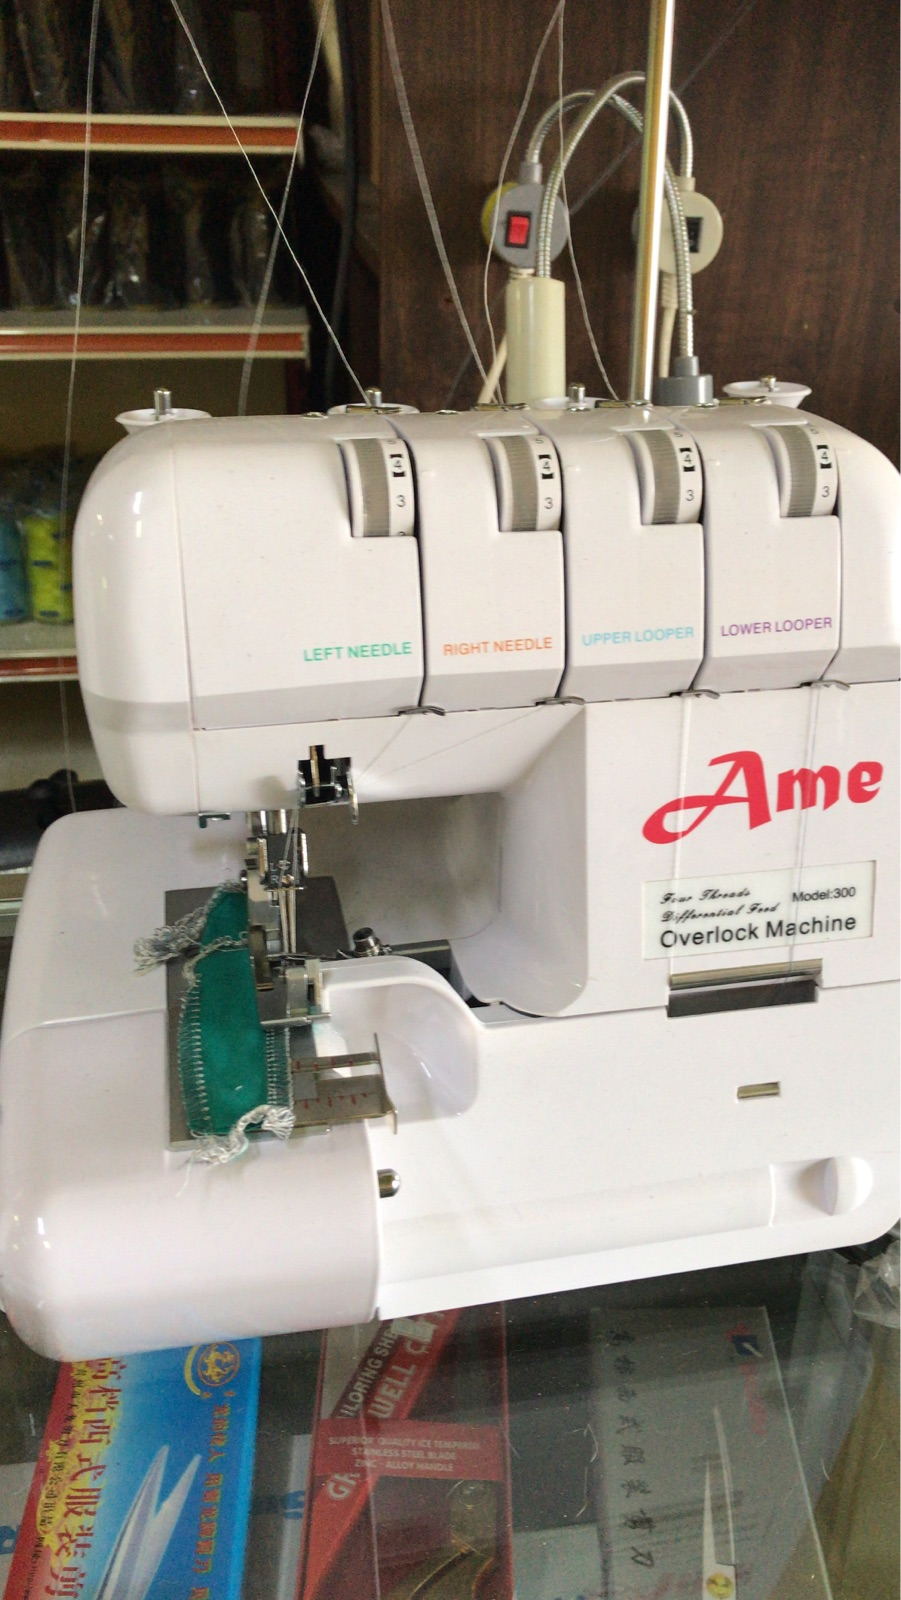 Ame Portable Sewing Machine